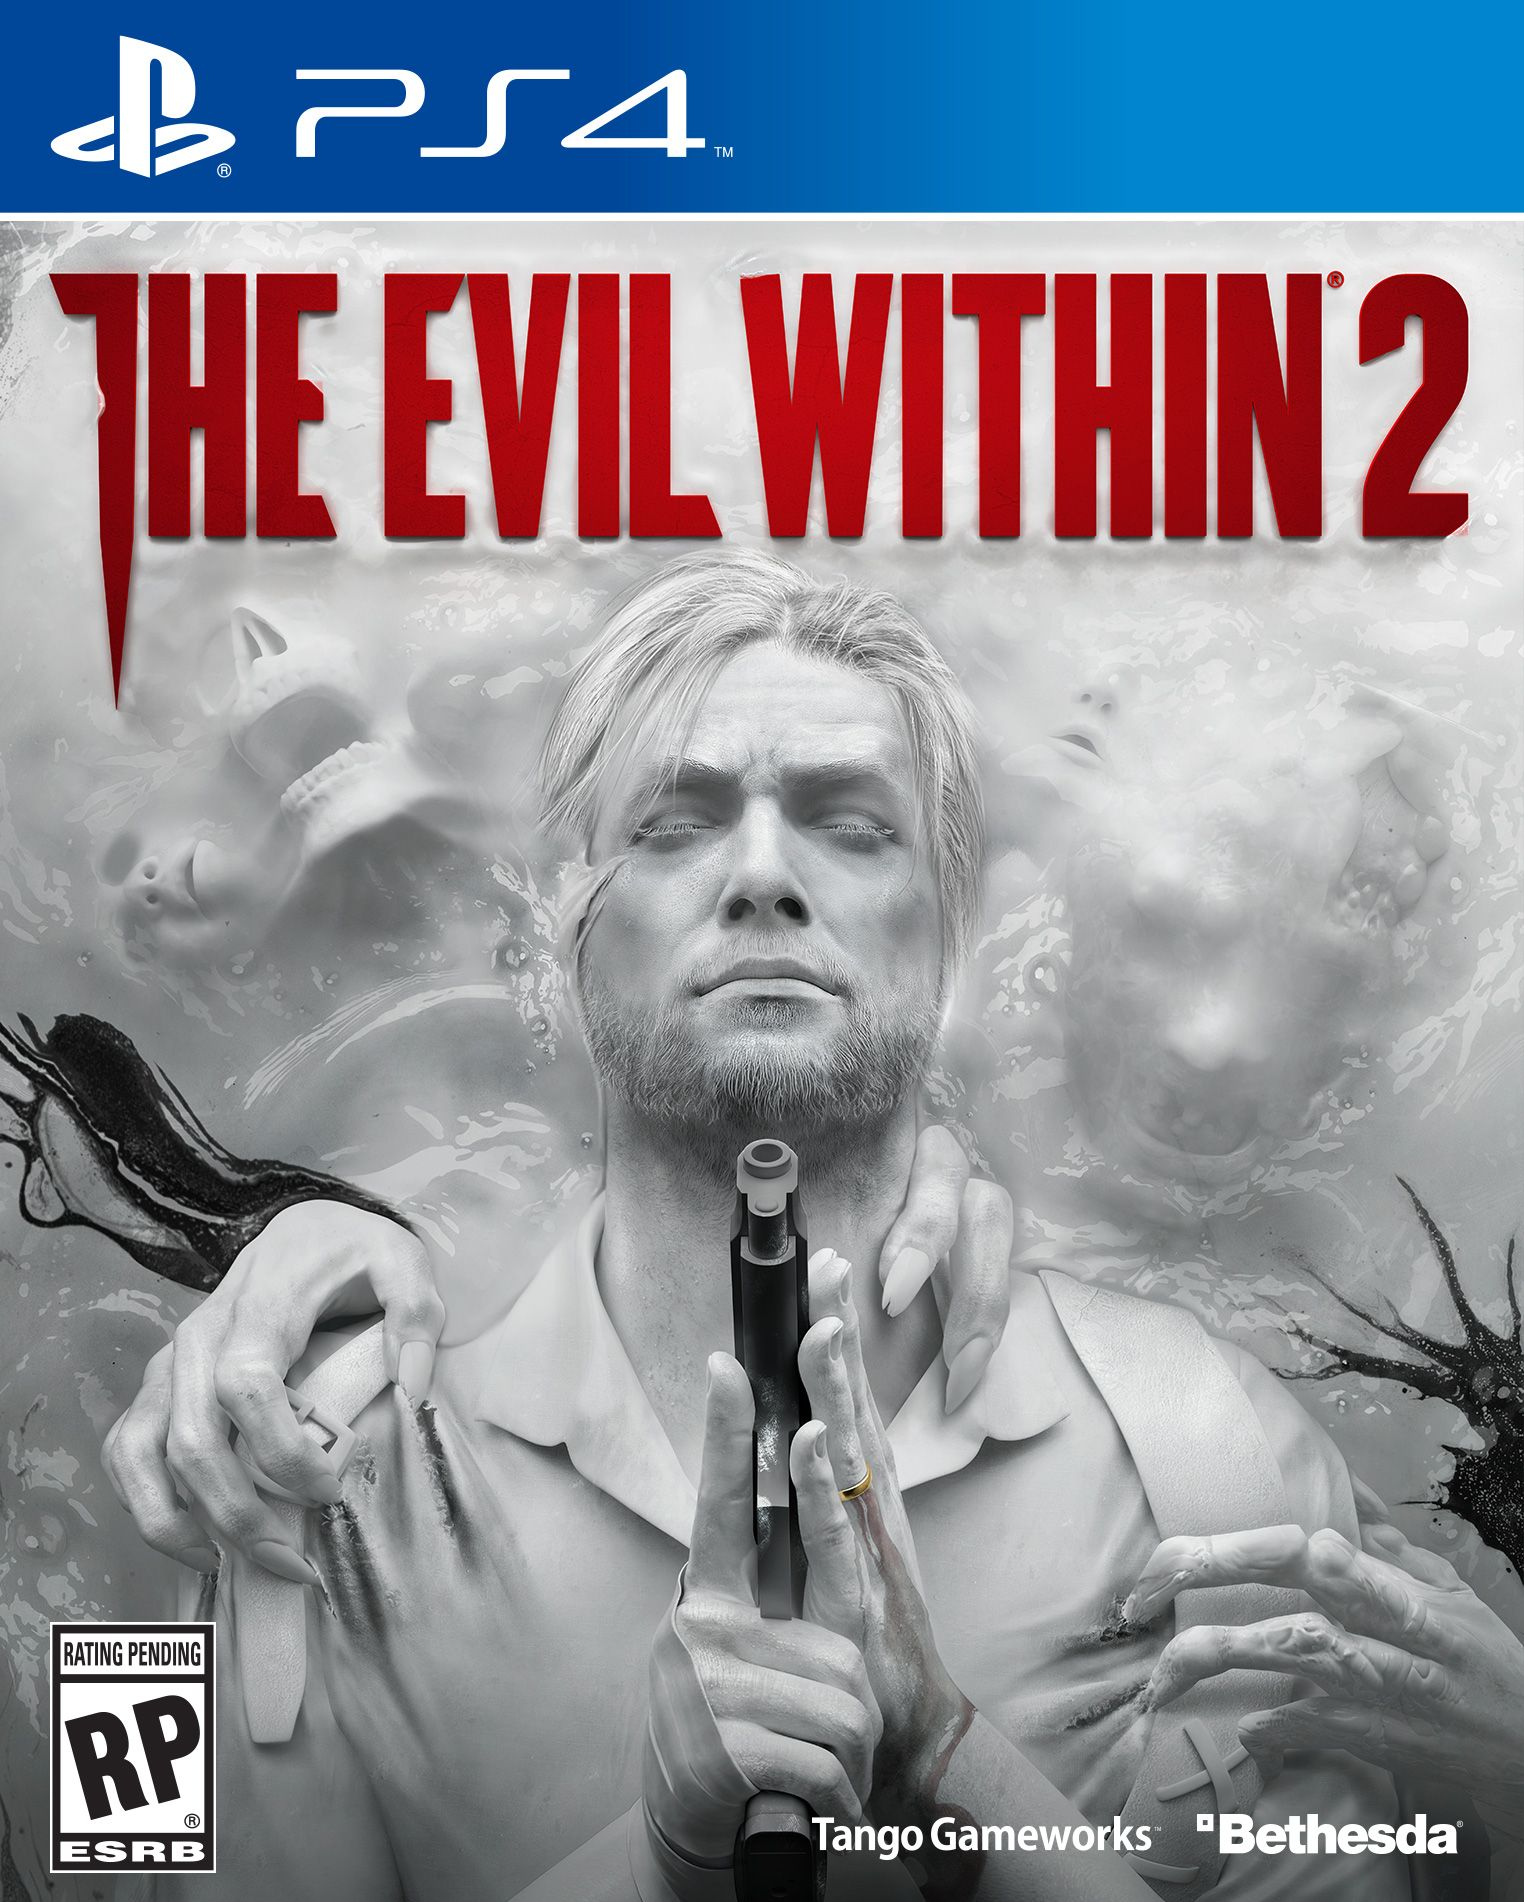 The Evil Within 2 ps4 frontcover-01 1496837647